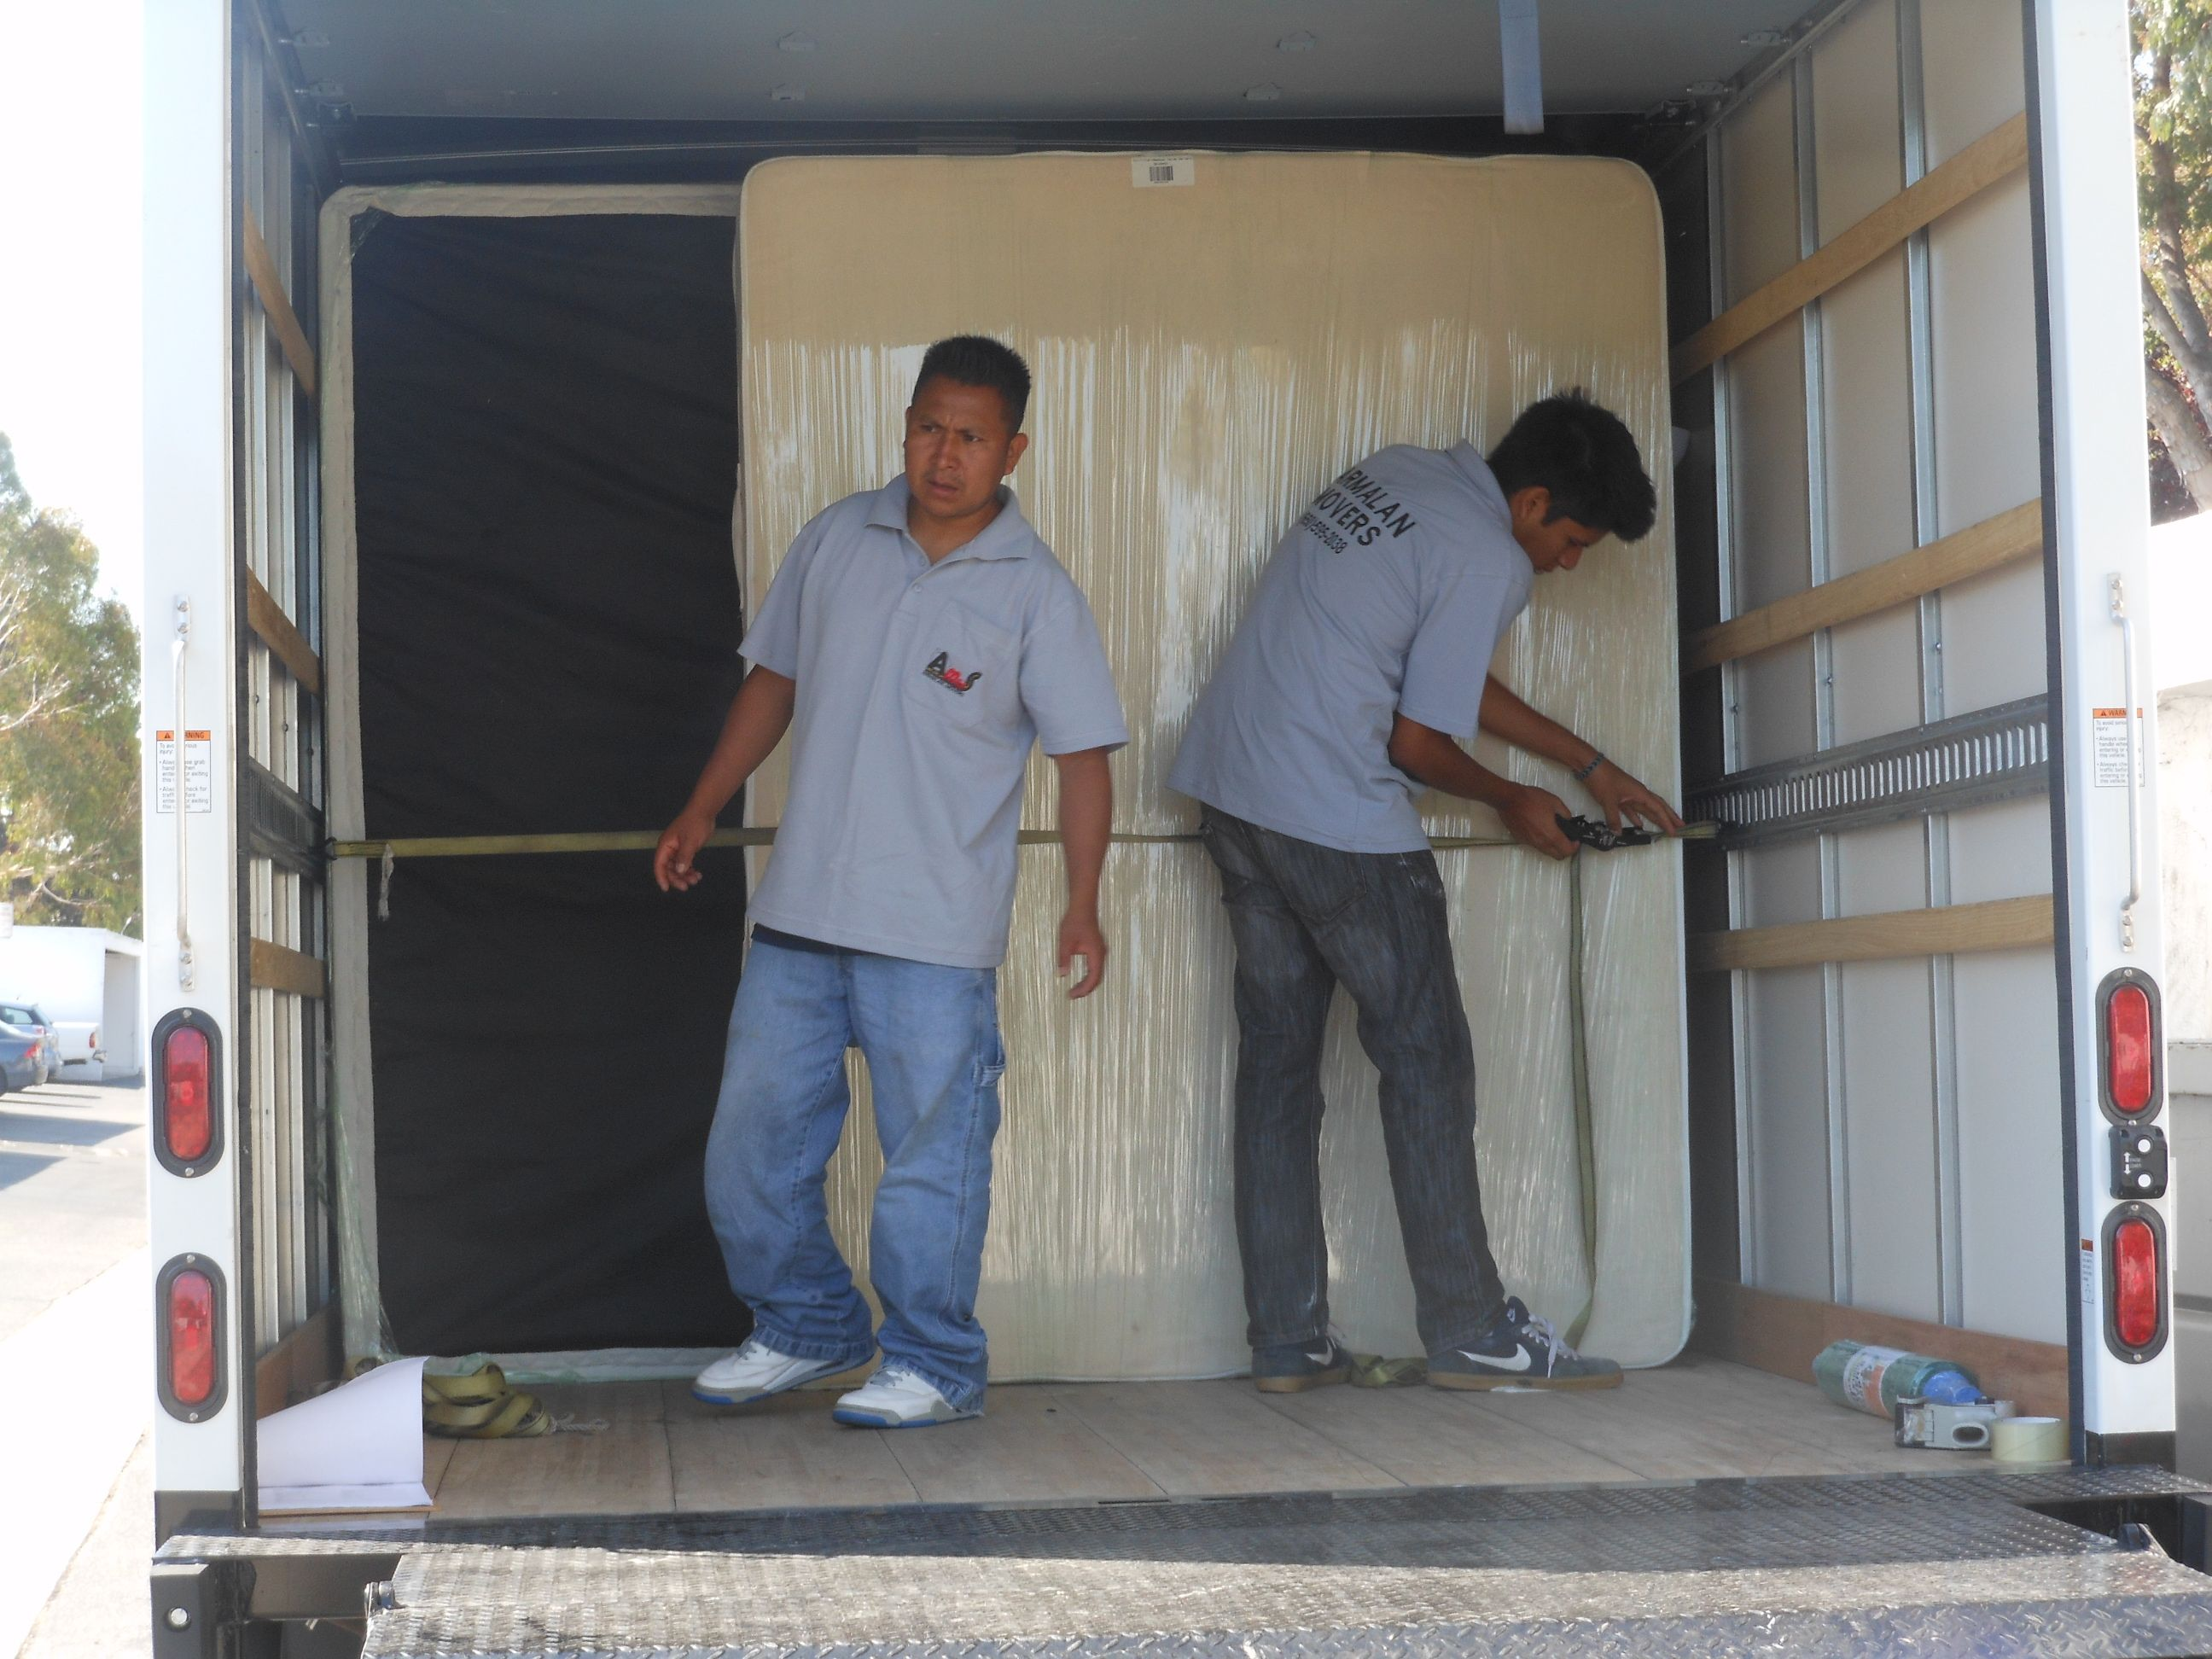 Armalan Moving Services Www Armalanservic 650 595 2038 Cal P U C T 190654 Movers Movingservice Moving Services Moving Company Moving Day